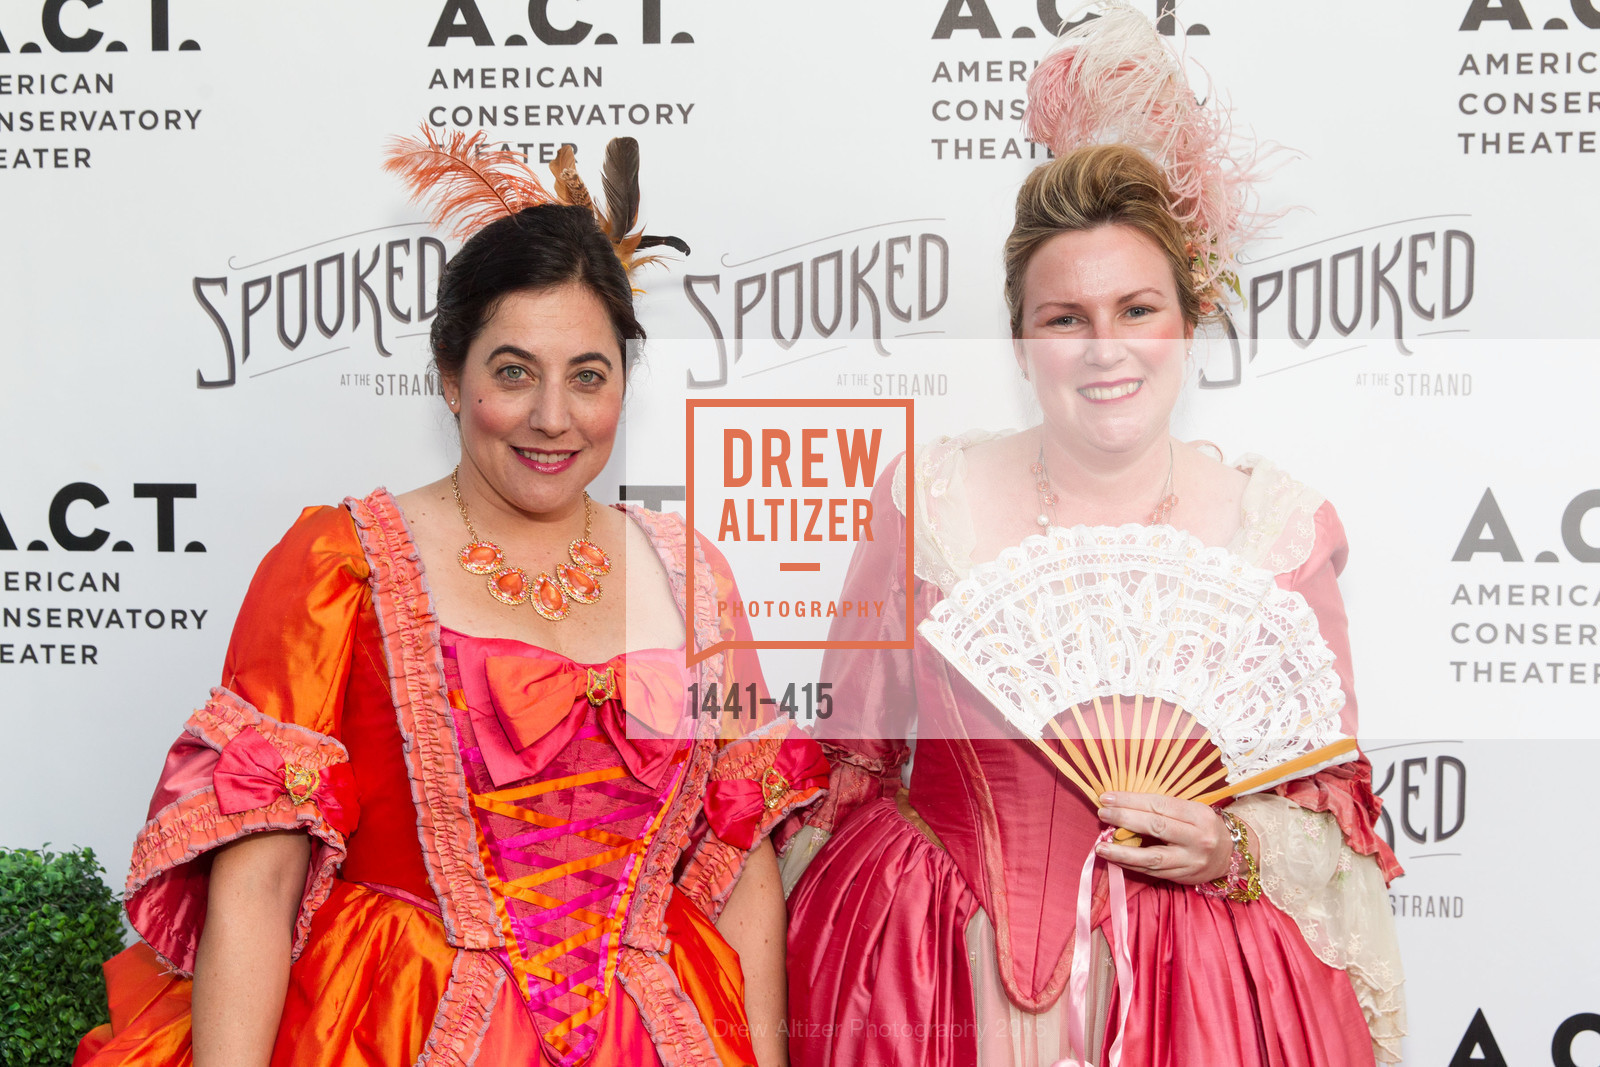 Diana Tauder, Christine Huhn, SPOOKED AT THE STRAND Presented by the American Conservatory Theater, The Strand Theater. 1127 Market Street, October 26th, 2015,Drew Altizer, Drew Altizer Photography, full-service event agency, private events, San Francisco photographer, photographer California